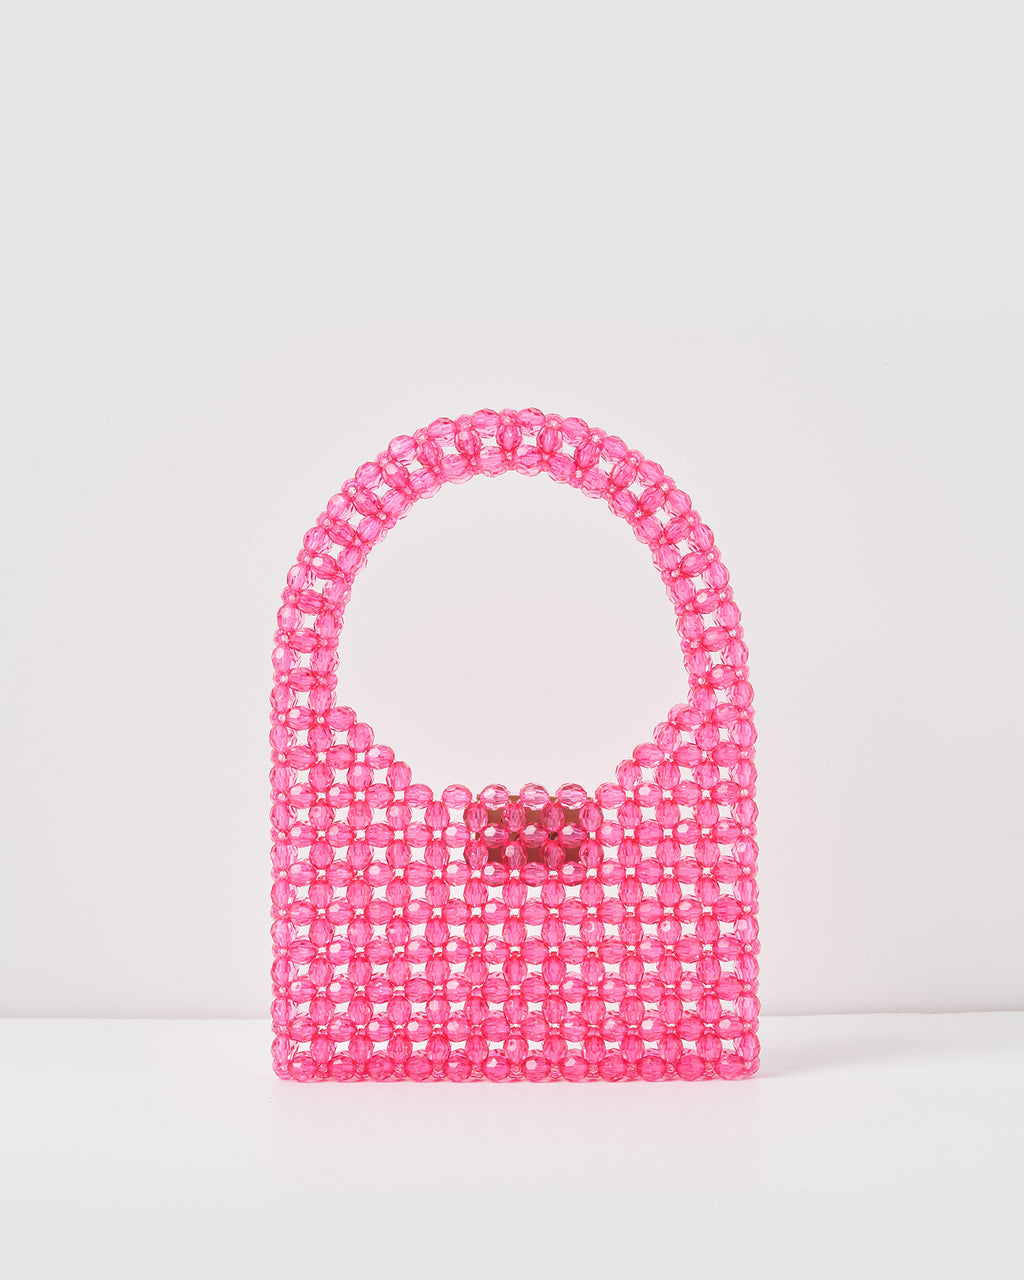 Izoa Kids Sia Beaded Handbag Pink